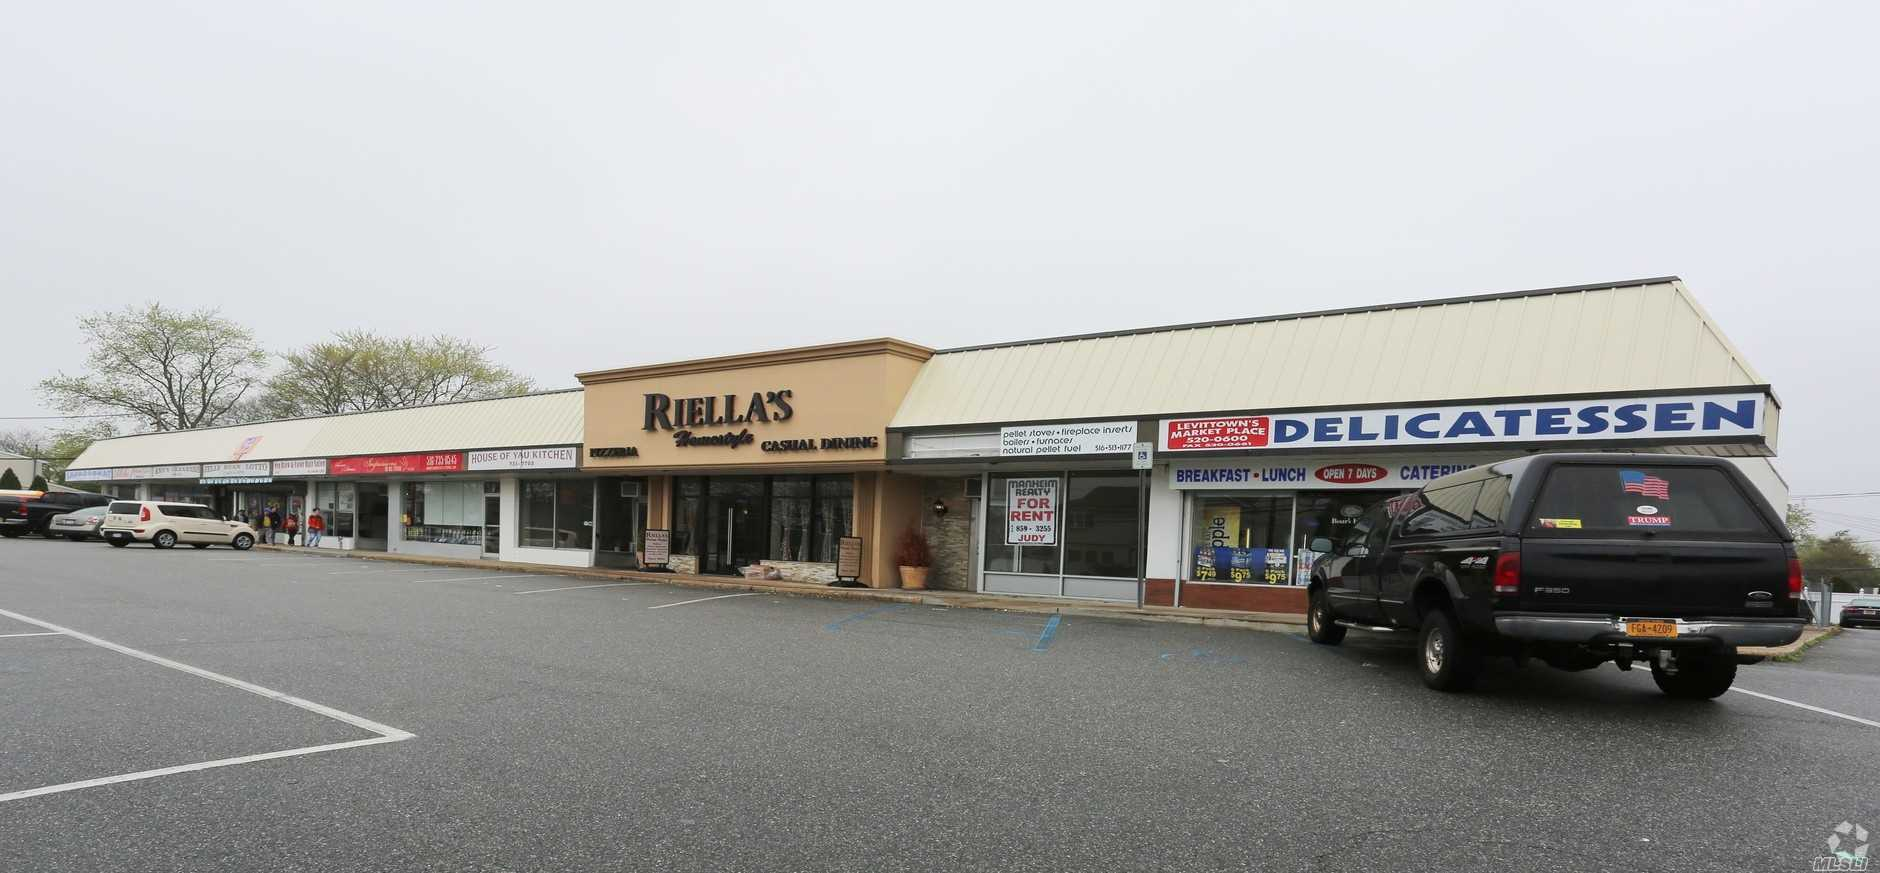 Terrific Multi Use Retail Space For Lease, Levittown Mailing Address Across From Wantagh On Busy Main Road, Includes Front And Back Parking, And Basement, Located In A Busy Shopping Center Which Includes, Diner, Deli, Chinese Take Out, Pizzeria, Cleaners, Laundry Mat As Well As A Very Busy Stationary Store.